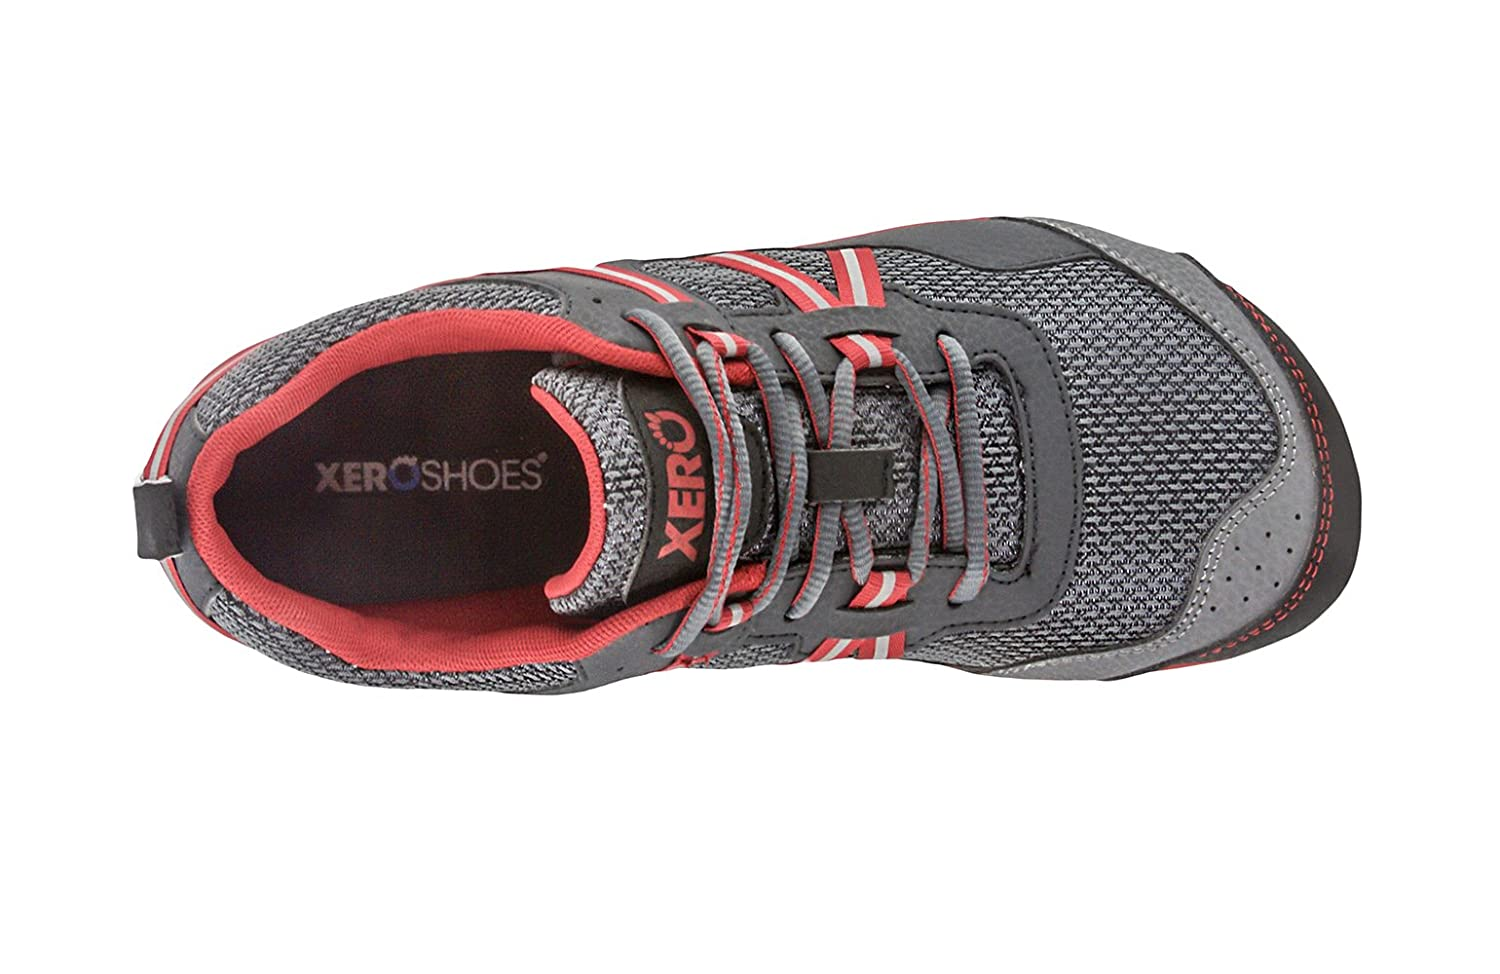 Xero Shoes Prio Mens Minimalist Barefoot Trail And Road Running Shoe Fitness Athletic Zero Drop Sneaker Trail Running